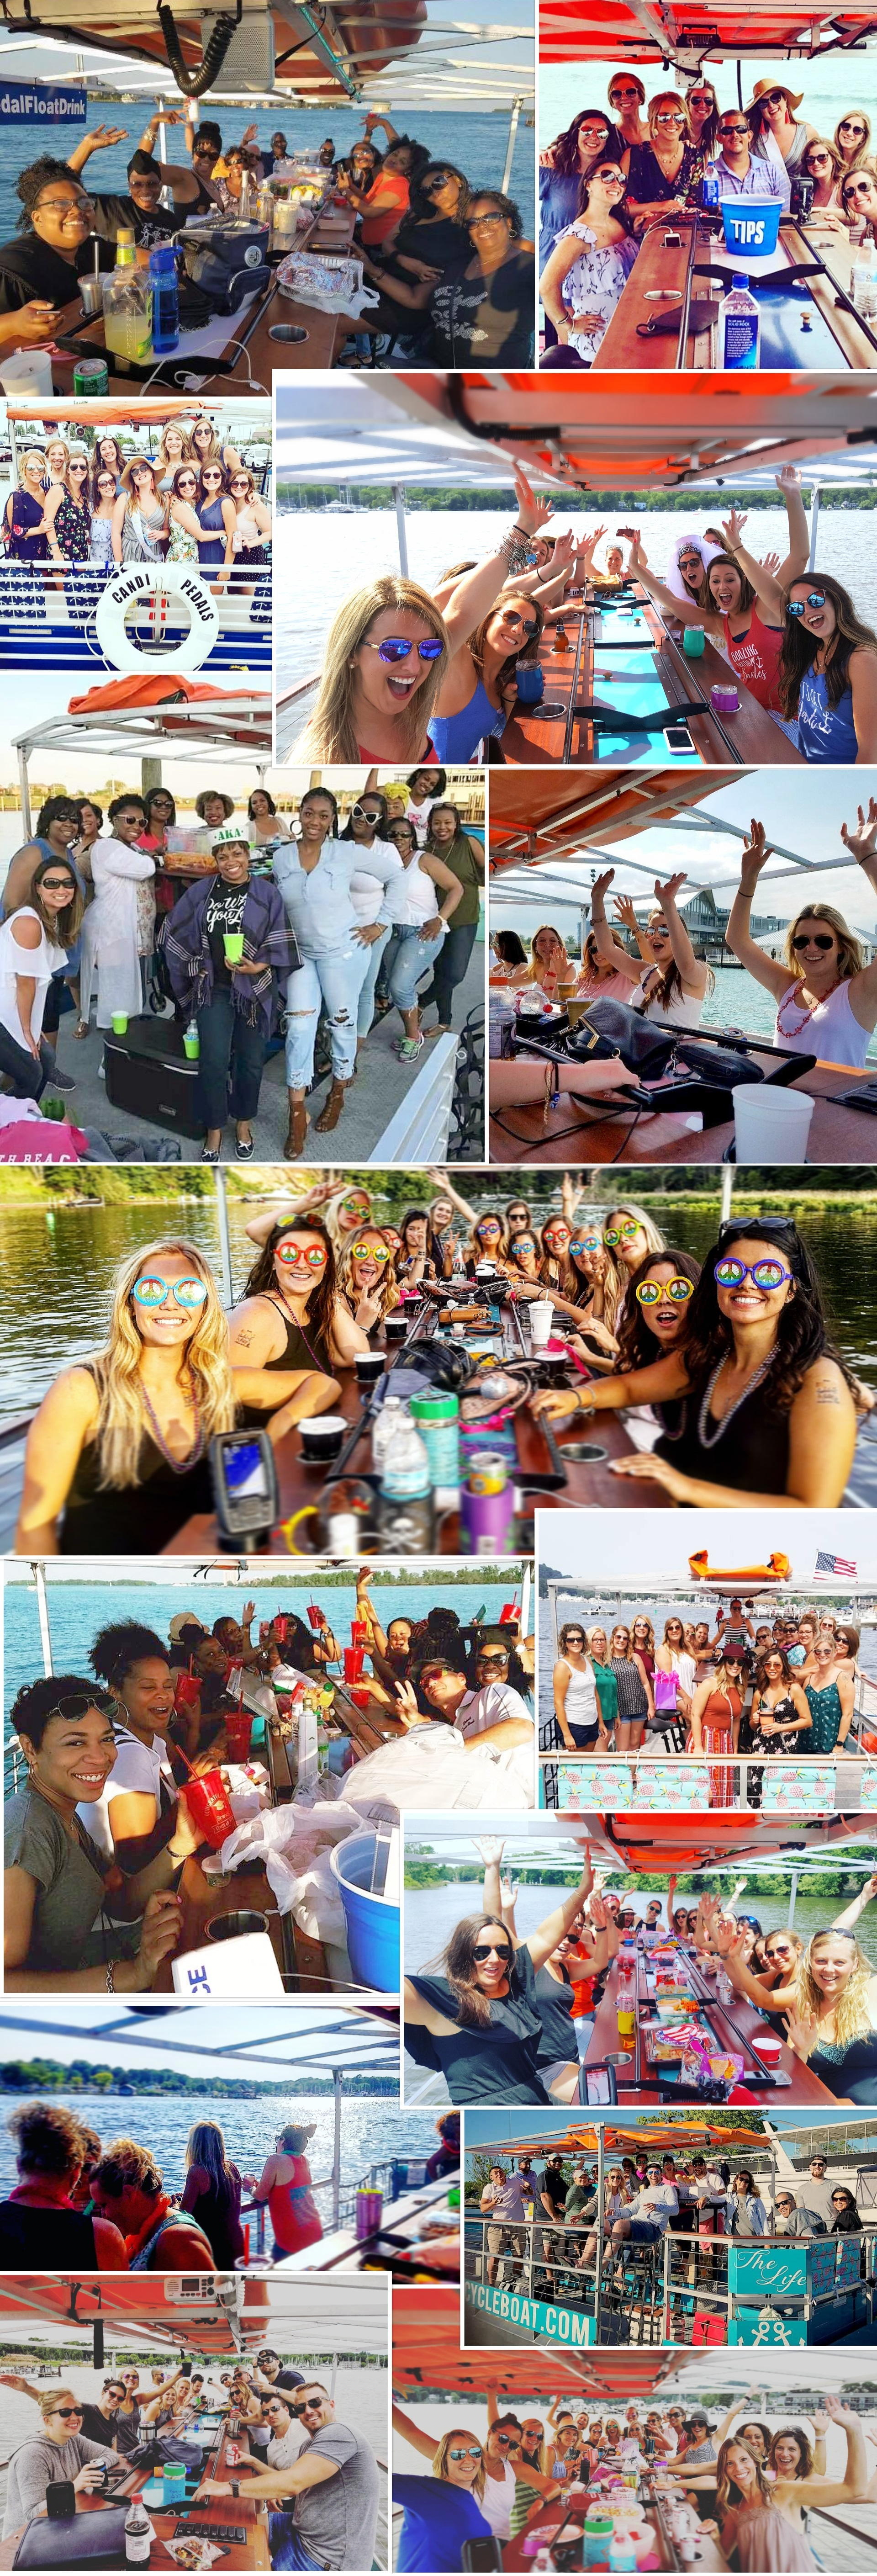 Cincy Cycle Boat is bringing the party to the Ohio River! Cincinnati's first floating bar!